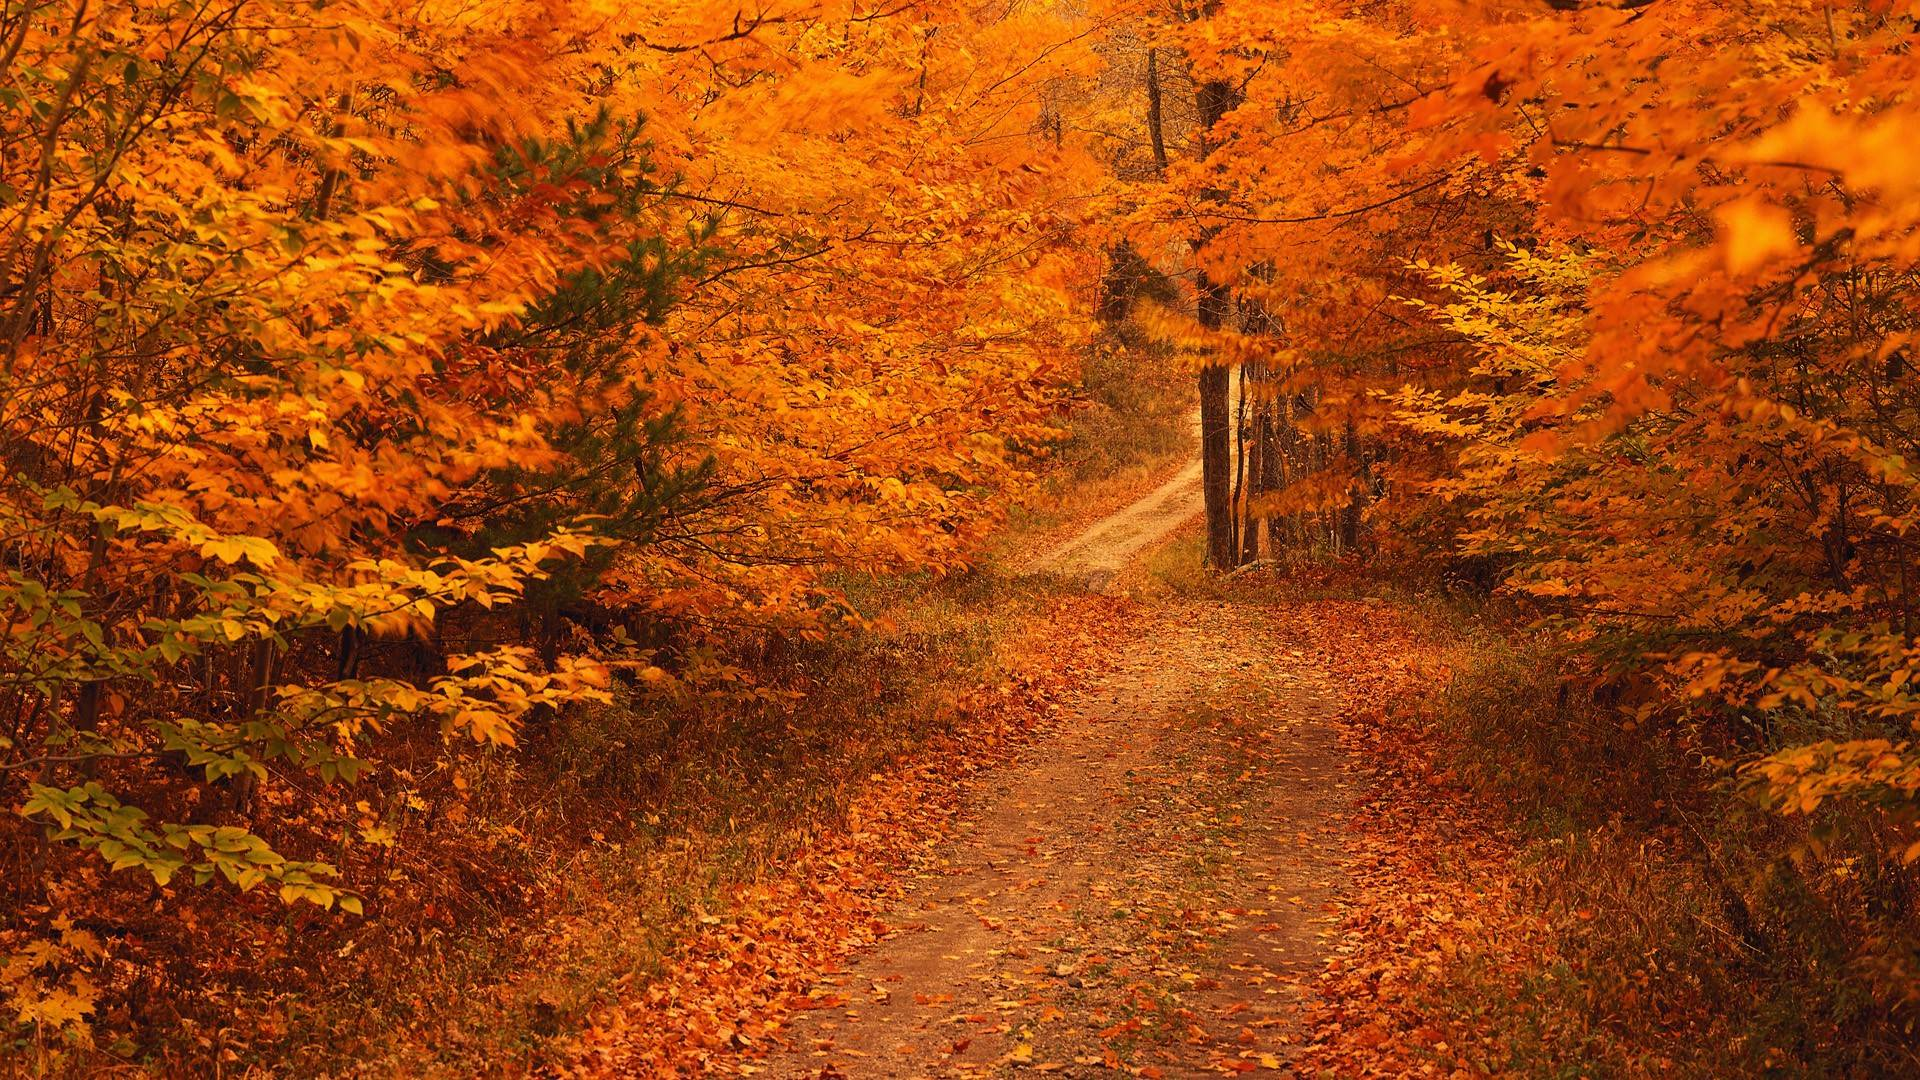 Autumn Images Backgrounds Indi Photos And Pictures